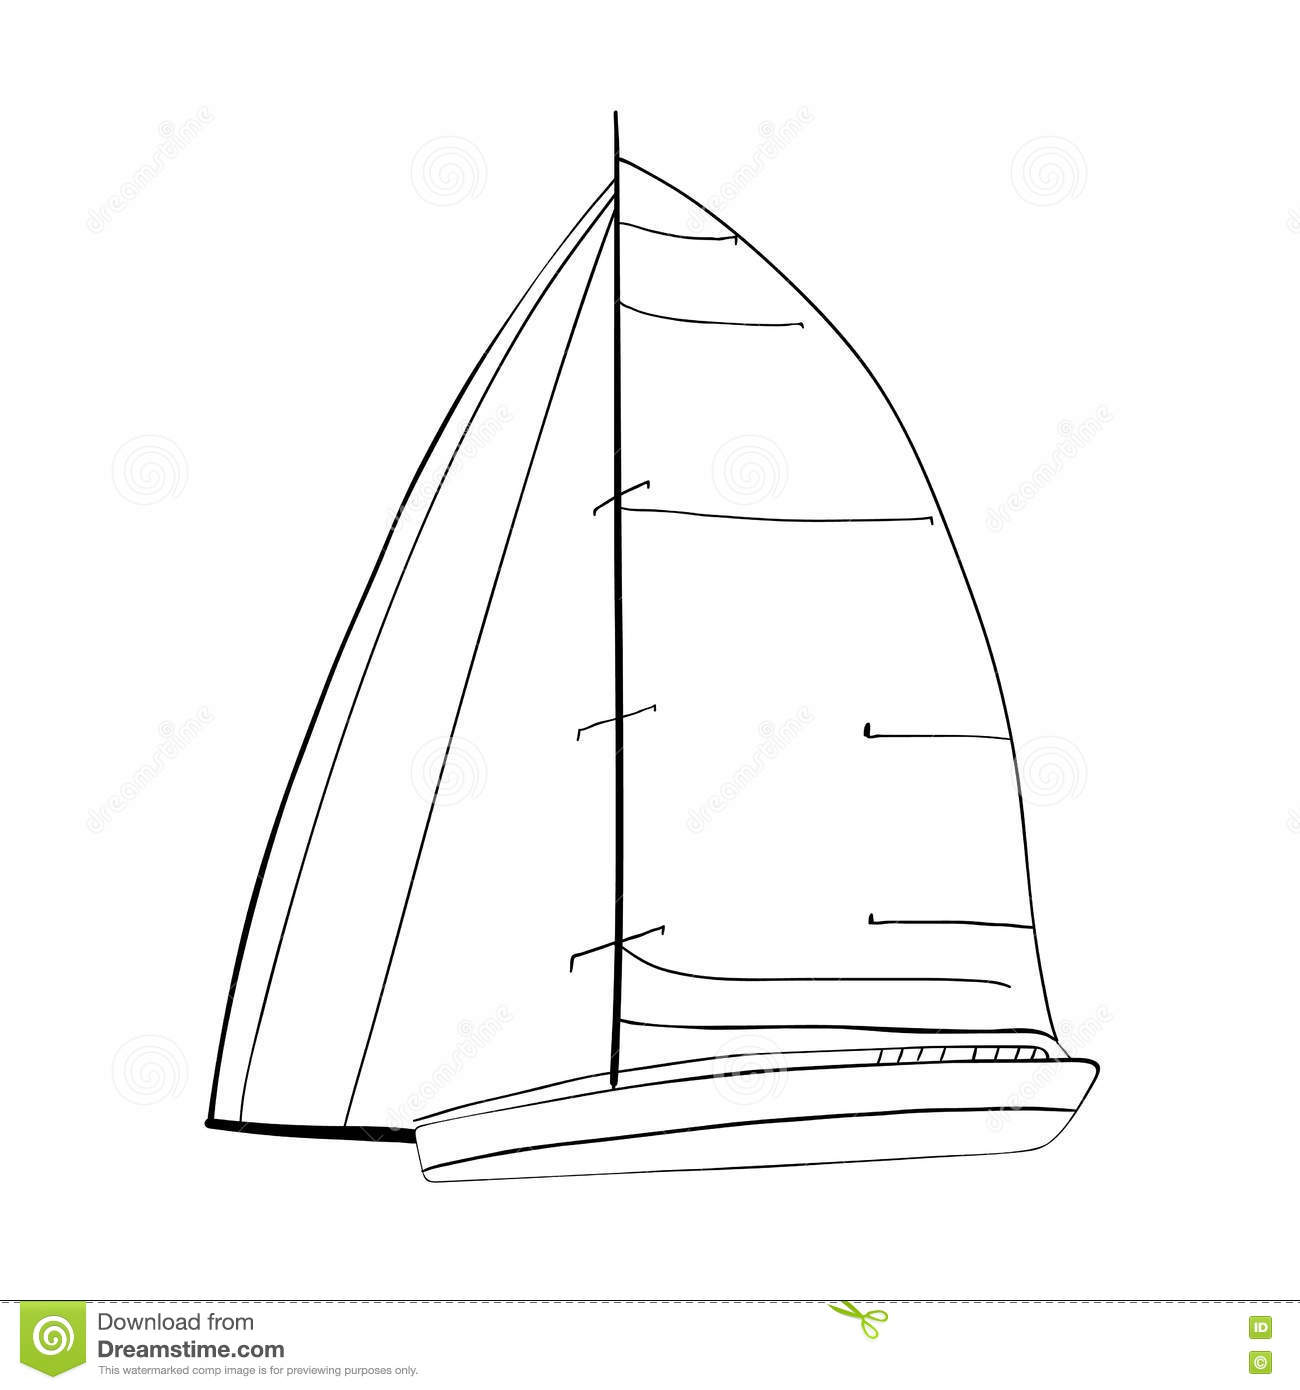 Yacht Diagram